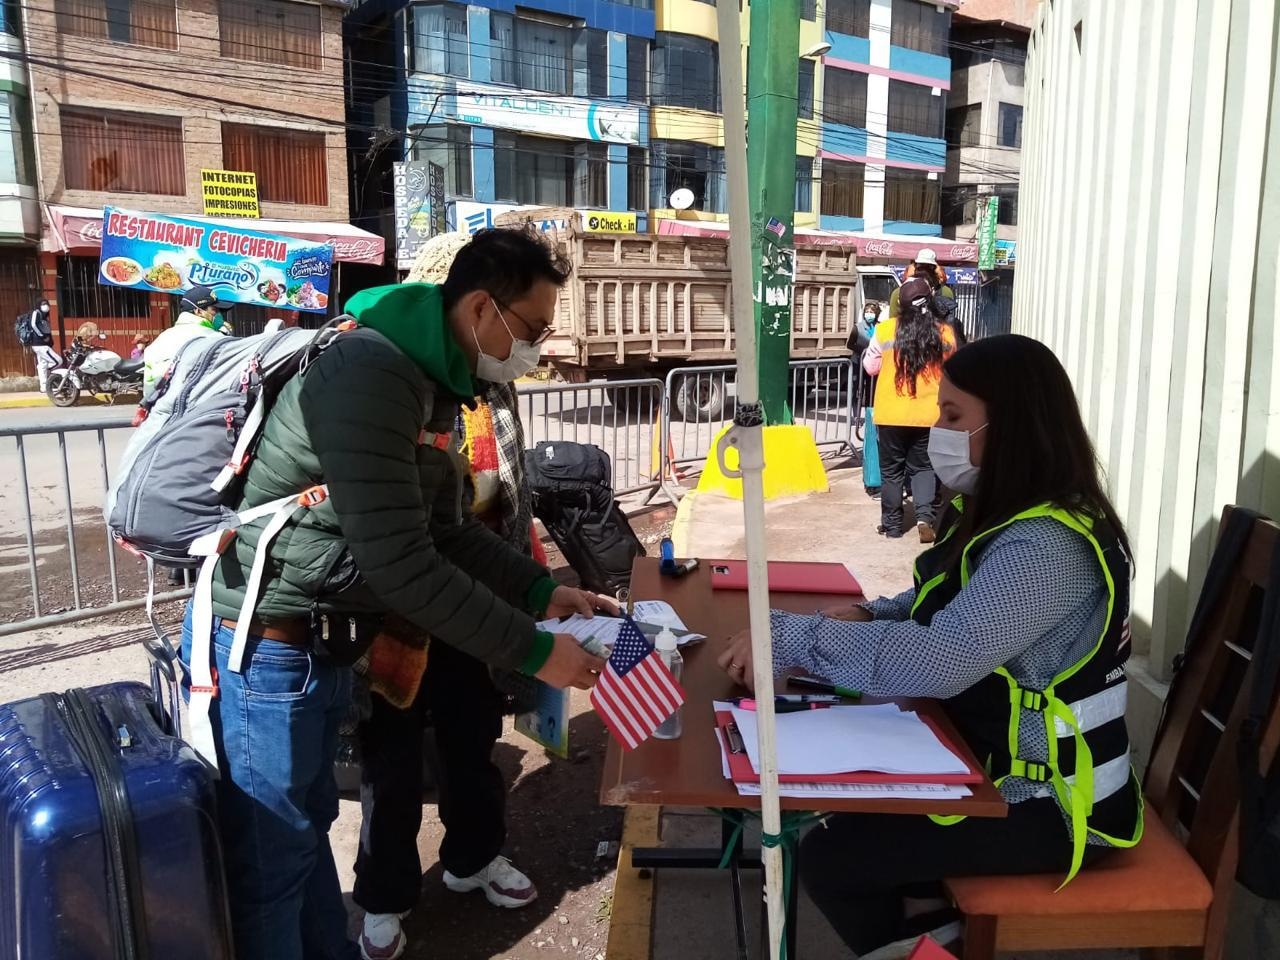 U.S. Consular Agent Marian Nguyen helps to process U.S. citizens during the evacuations (Photo courtesy of Marian)